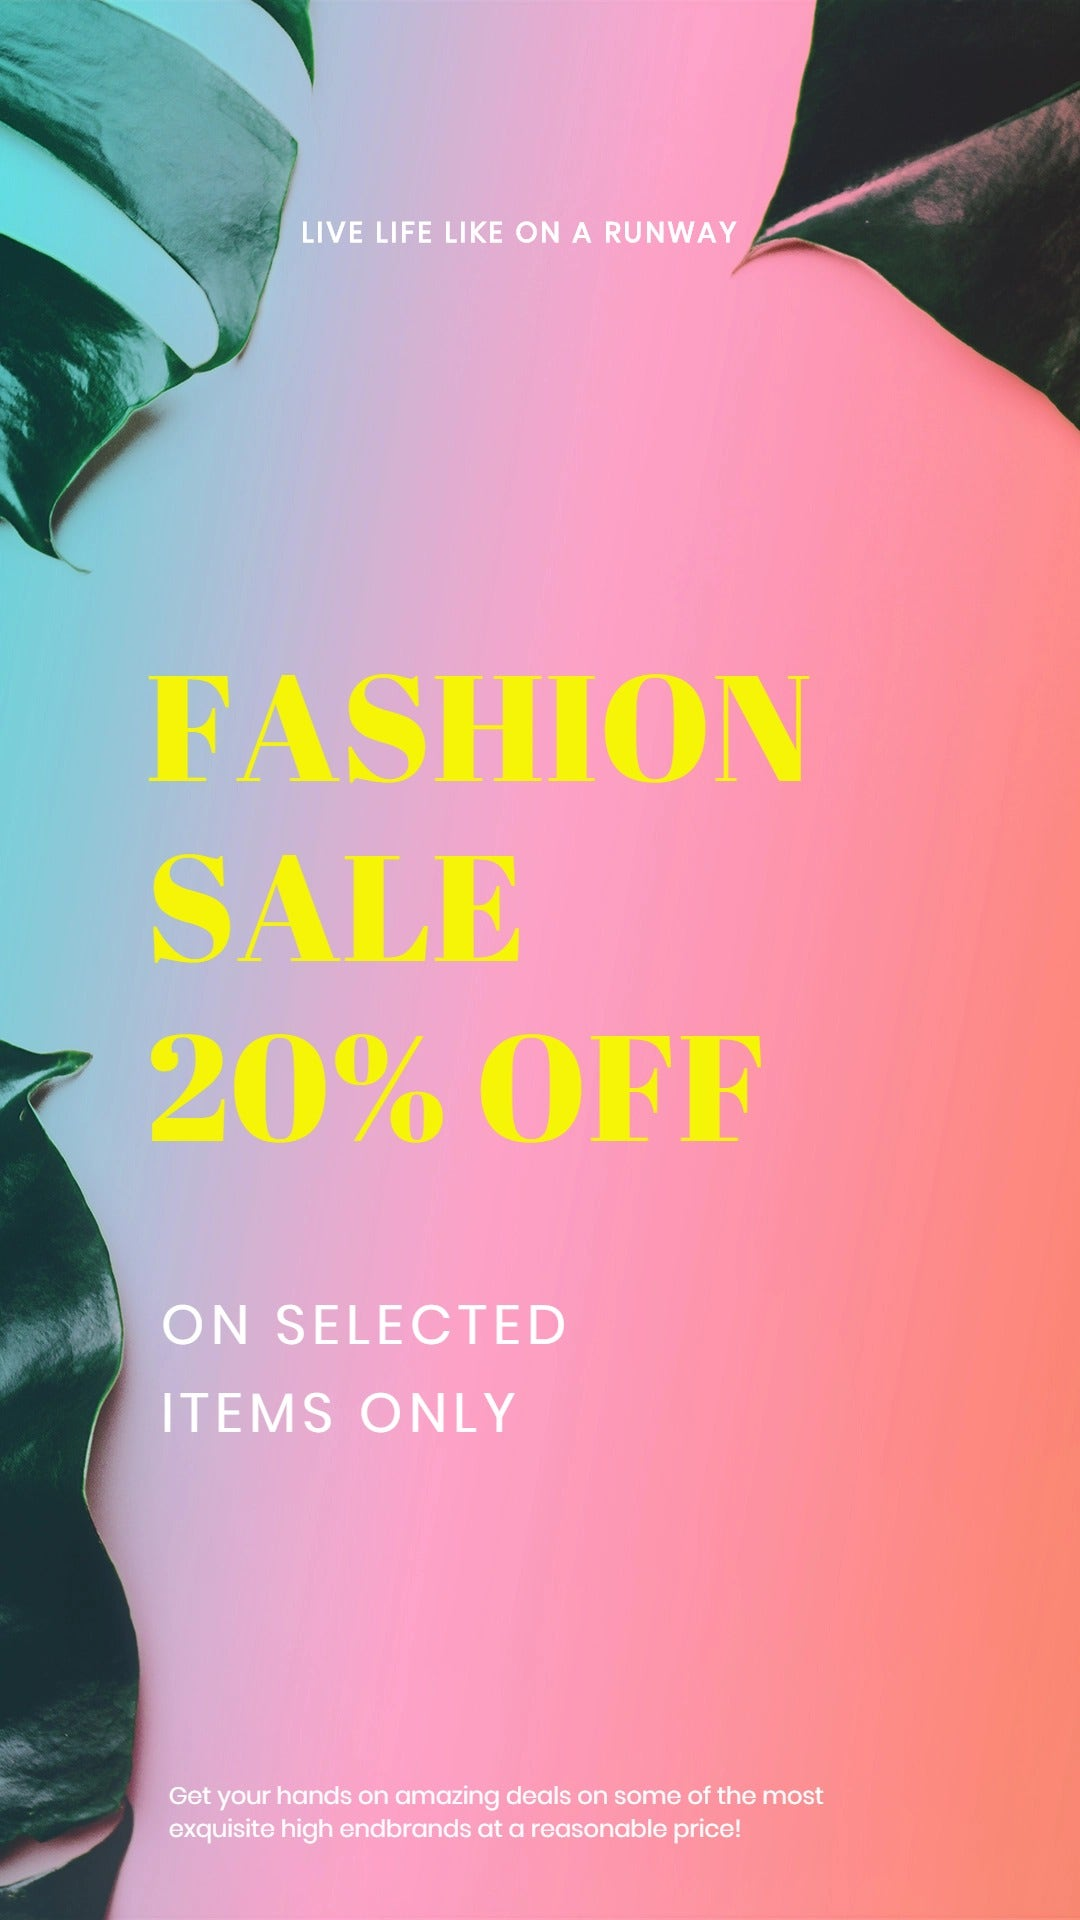 Basic Fashion Sale Whatsapp Post Template